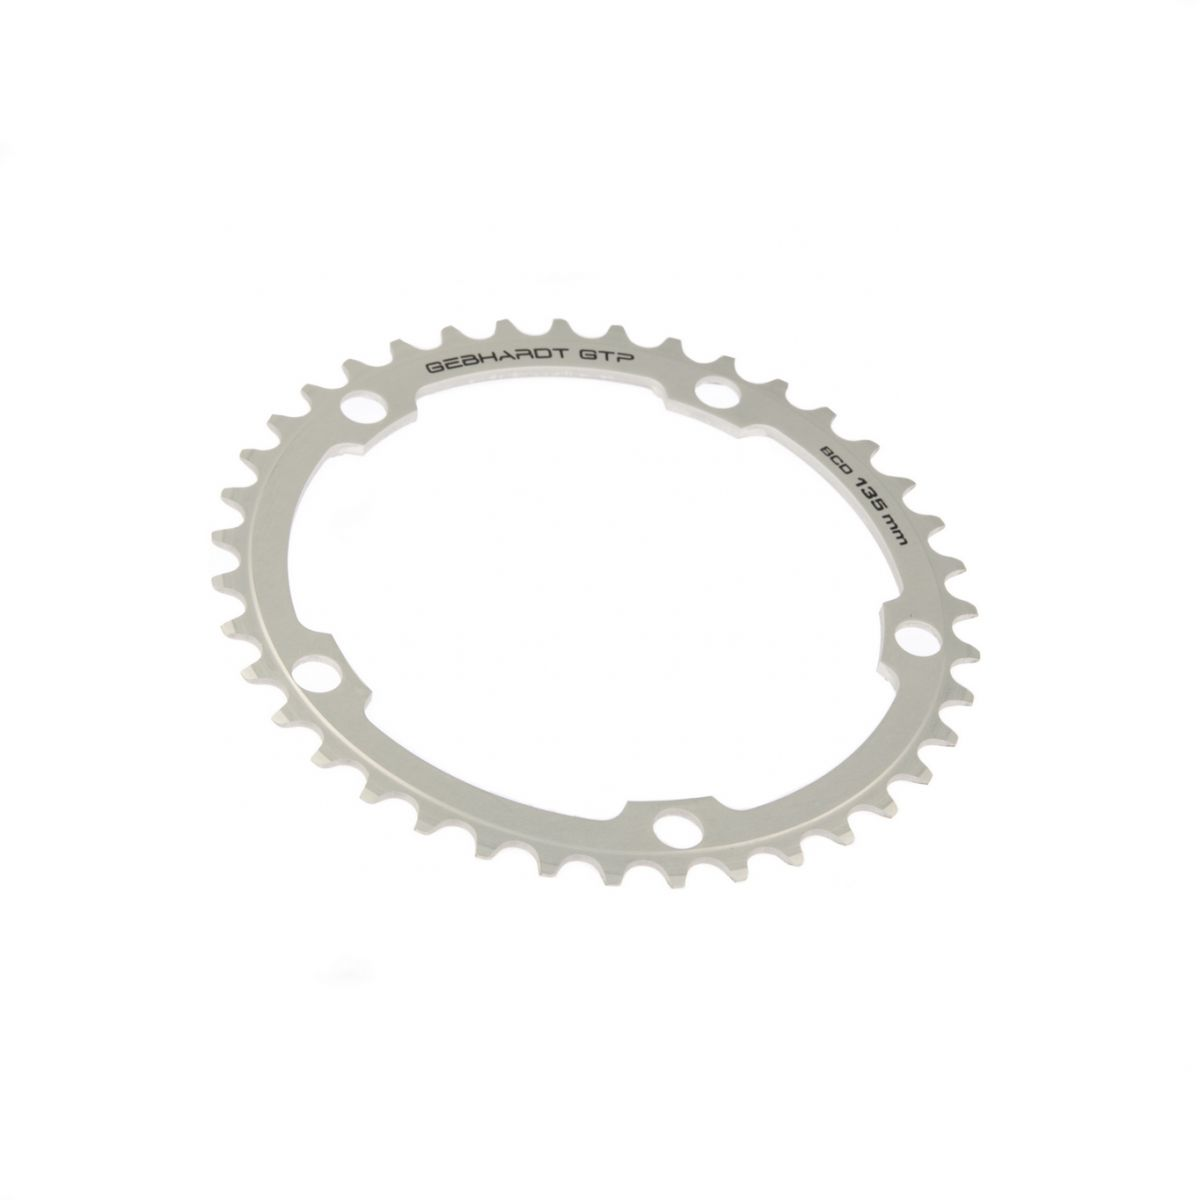 gebhardt chainring classic bcd 135 mm 5hole 42t silver